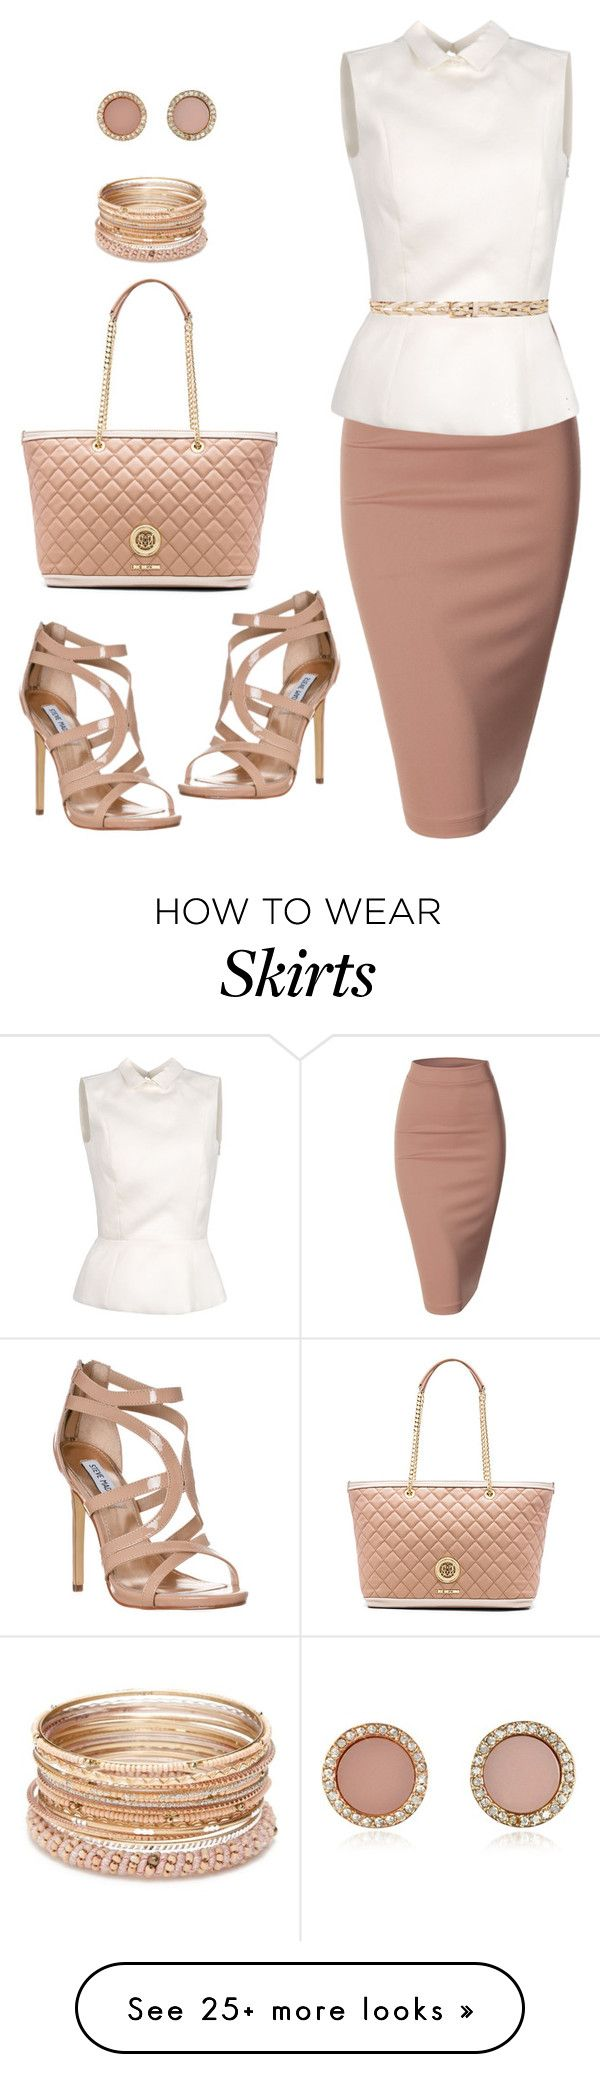 """Untitled #833"" by gallant81 on Polyvore featuring Love Moschino, Doublju, Rochas, Steve Madden, Michael Kors, Red Camel and Linea Pelle"